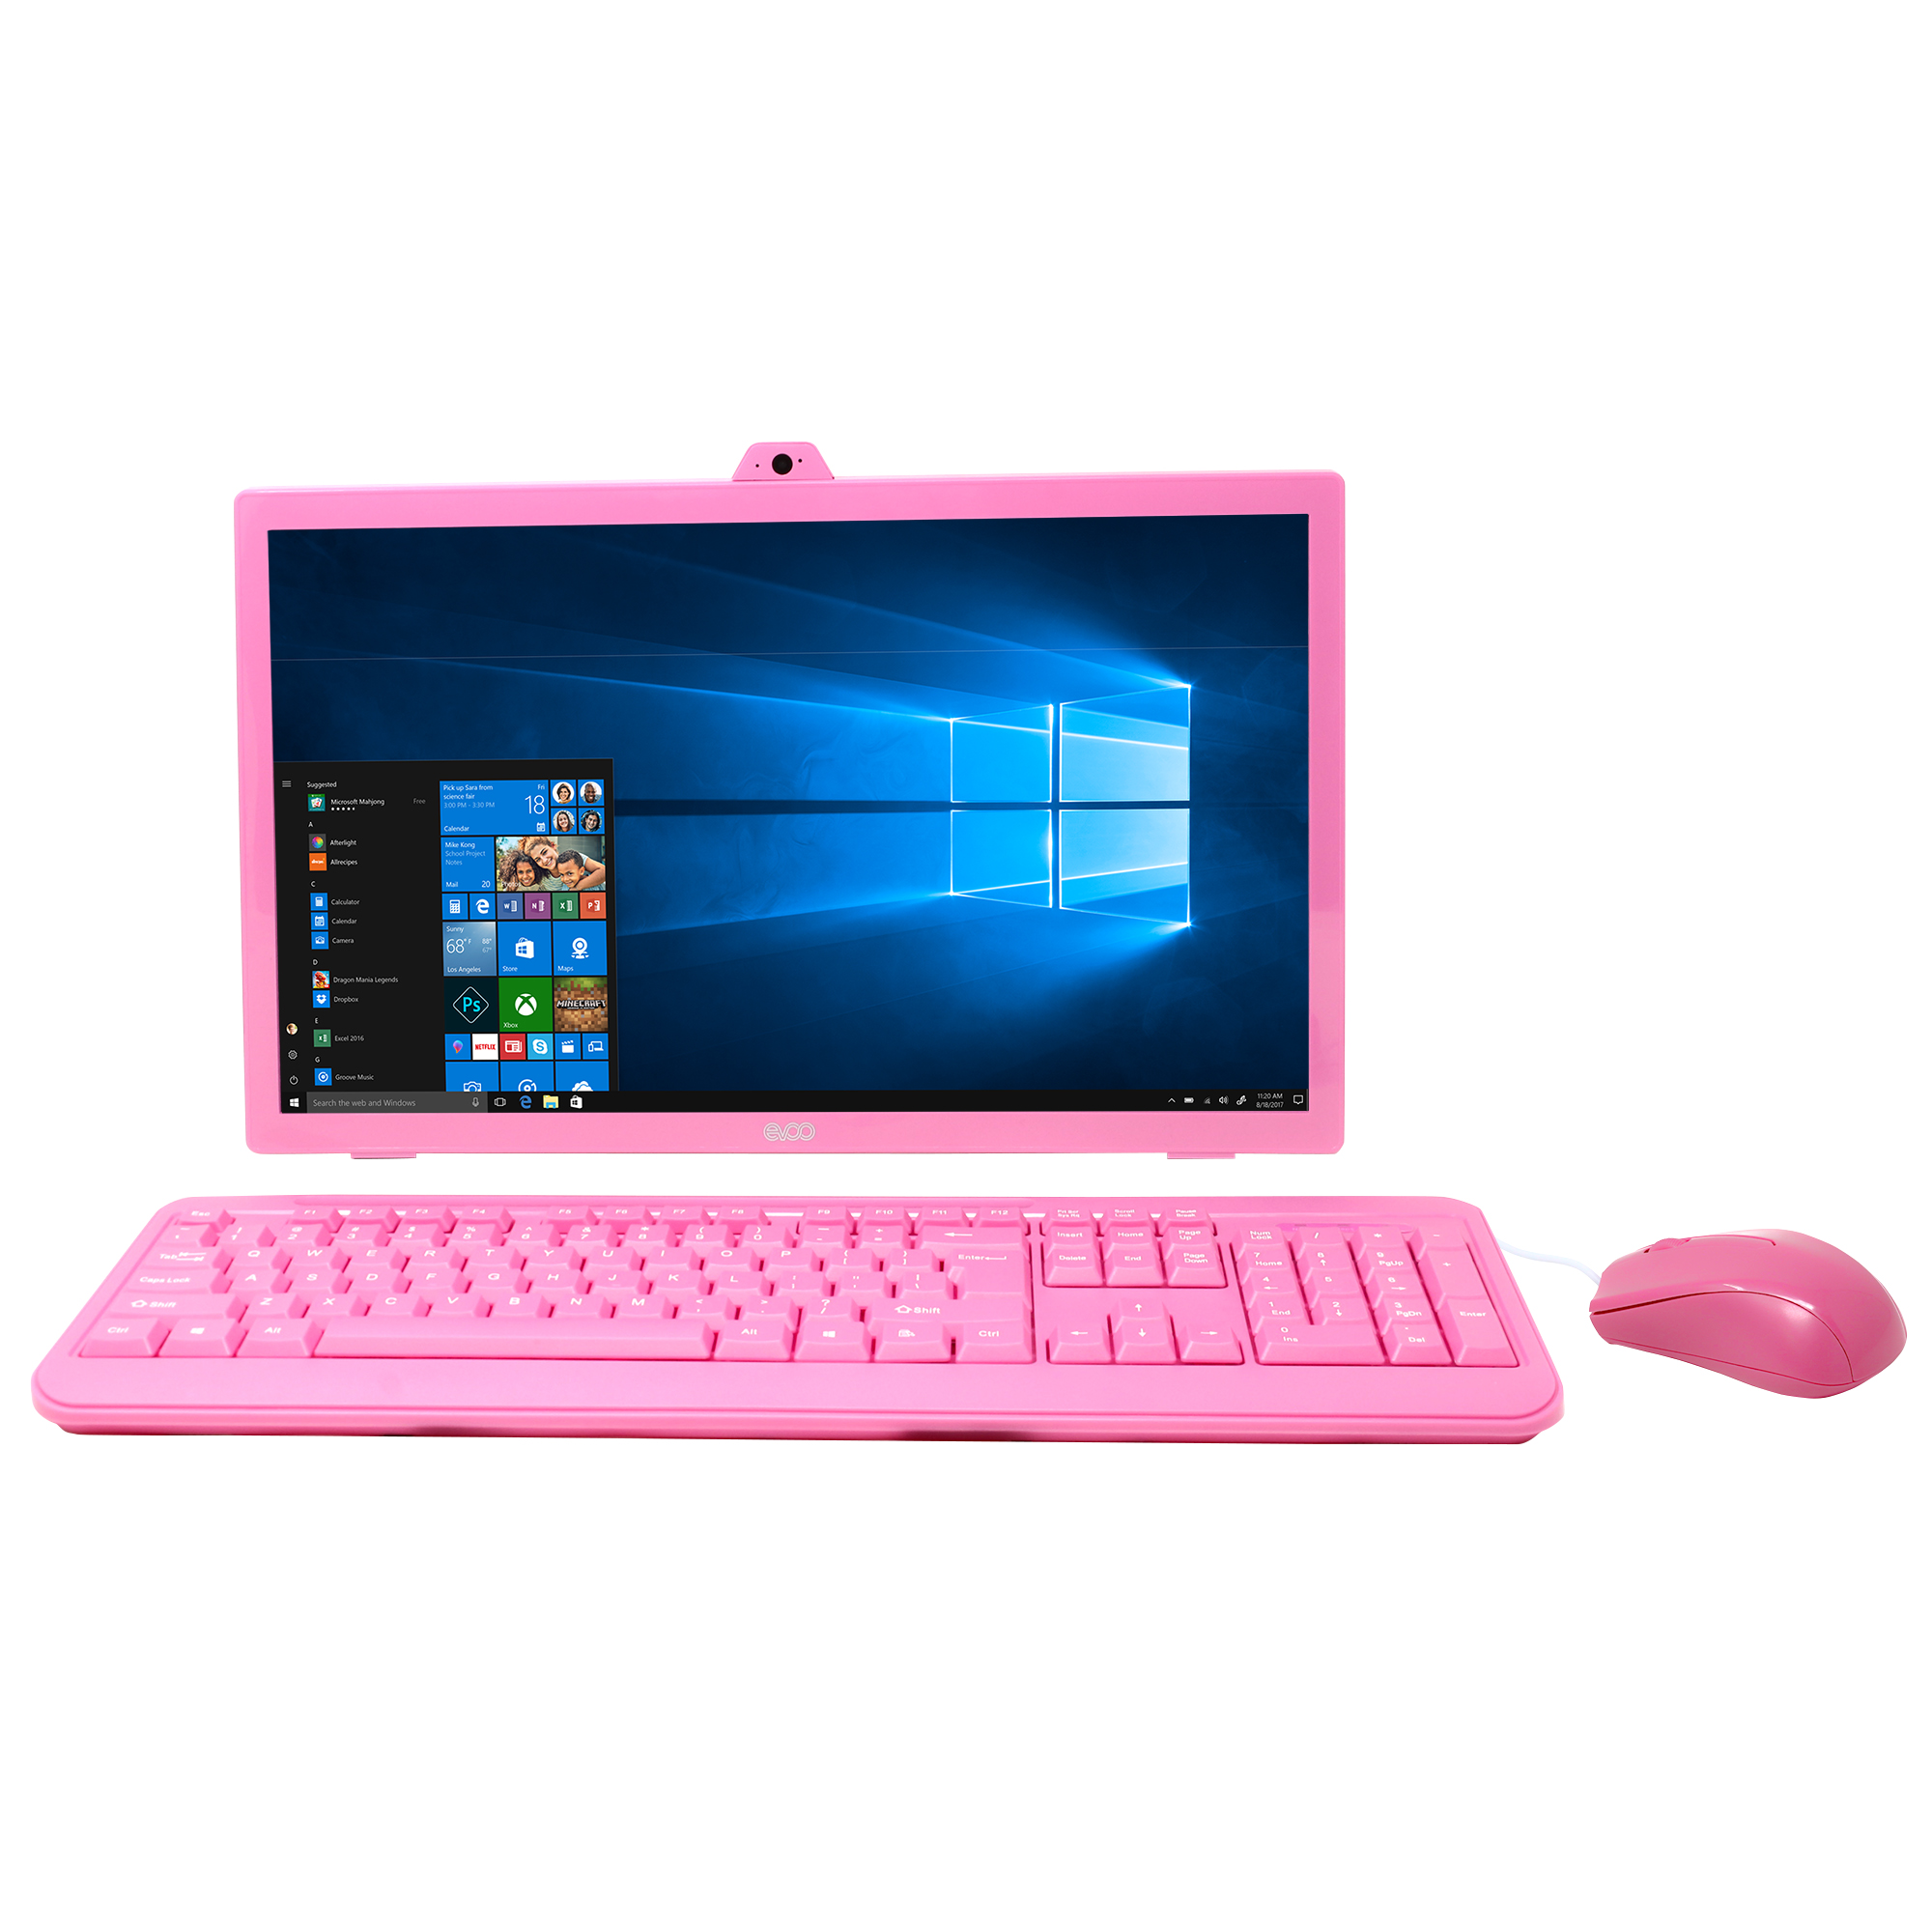 "EVOO 18.5"" All-in-One Desktop with Wired Keyboard and Mouse, Windows 10 Home, Quad Core, HDMI, Webcam, Pink"